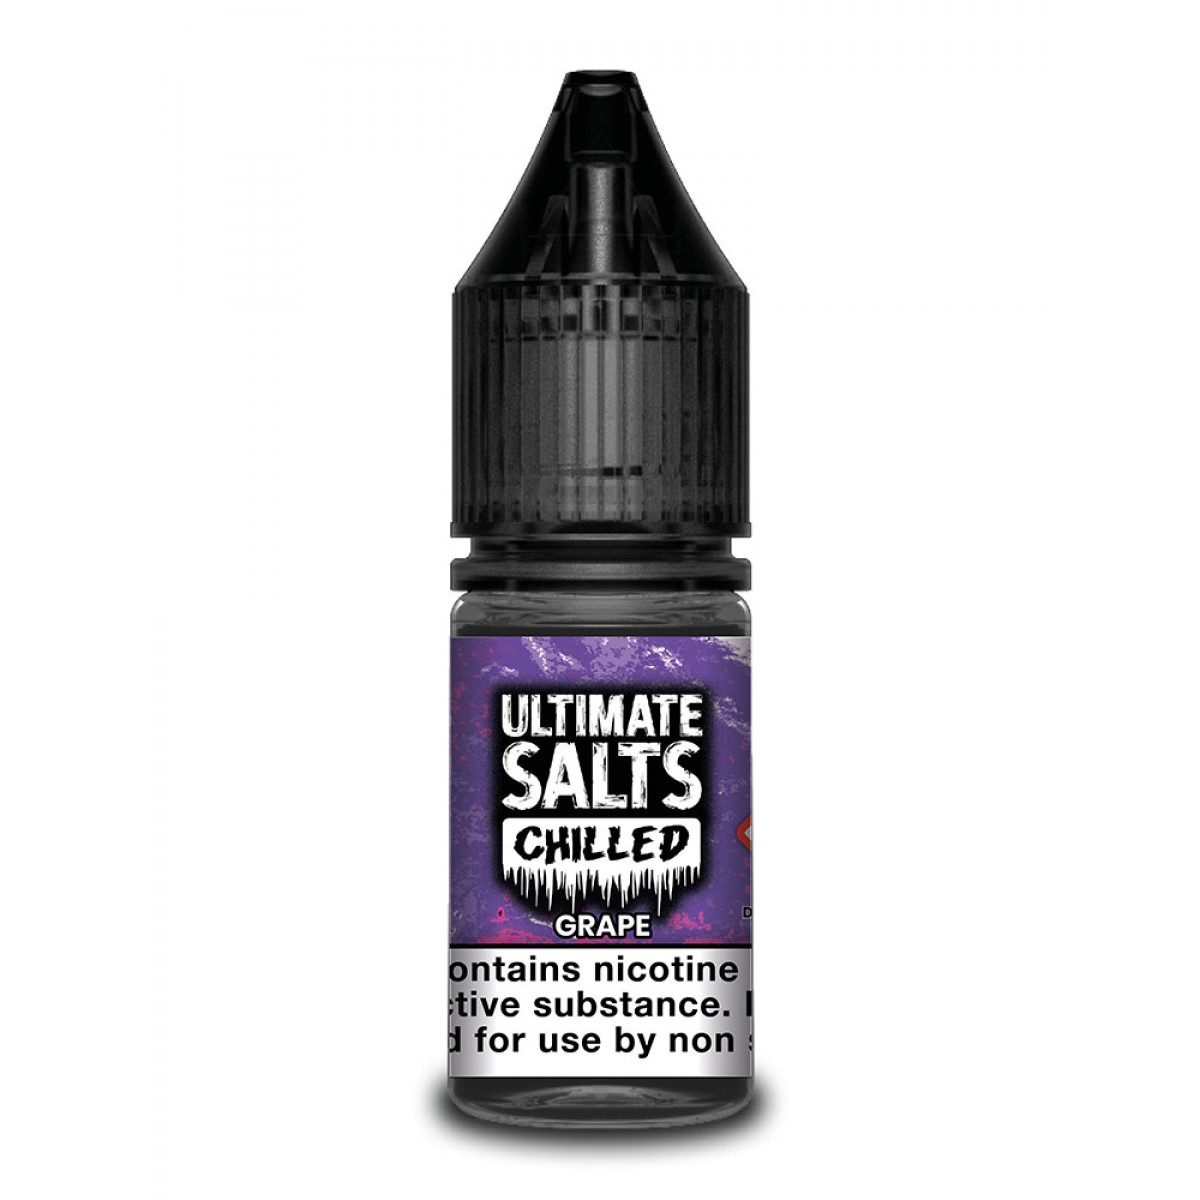 GRAPE BY ULTIMATE SALTS CHILLED